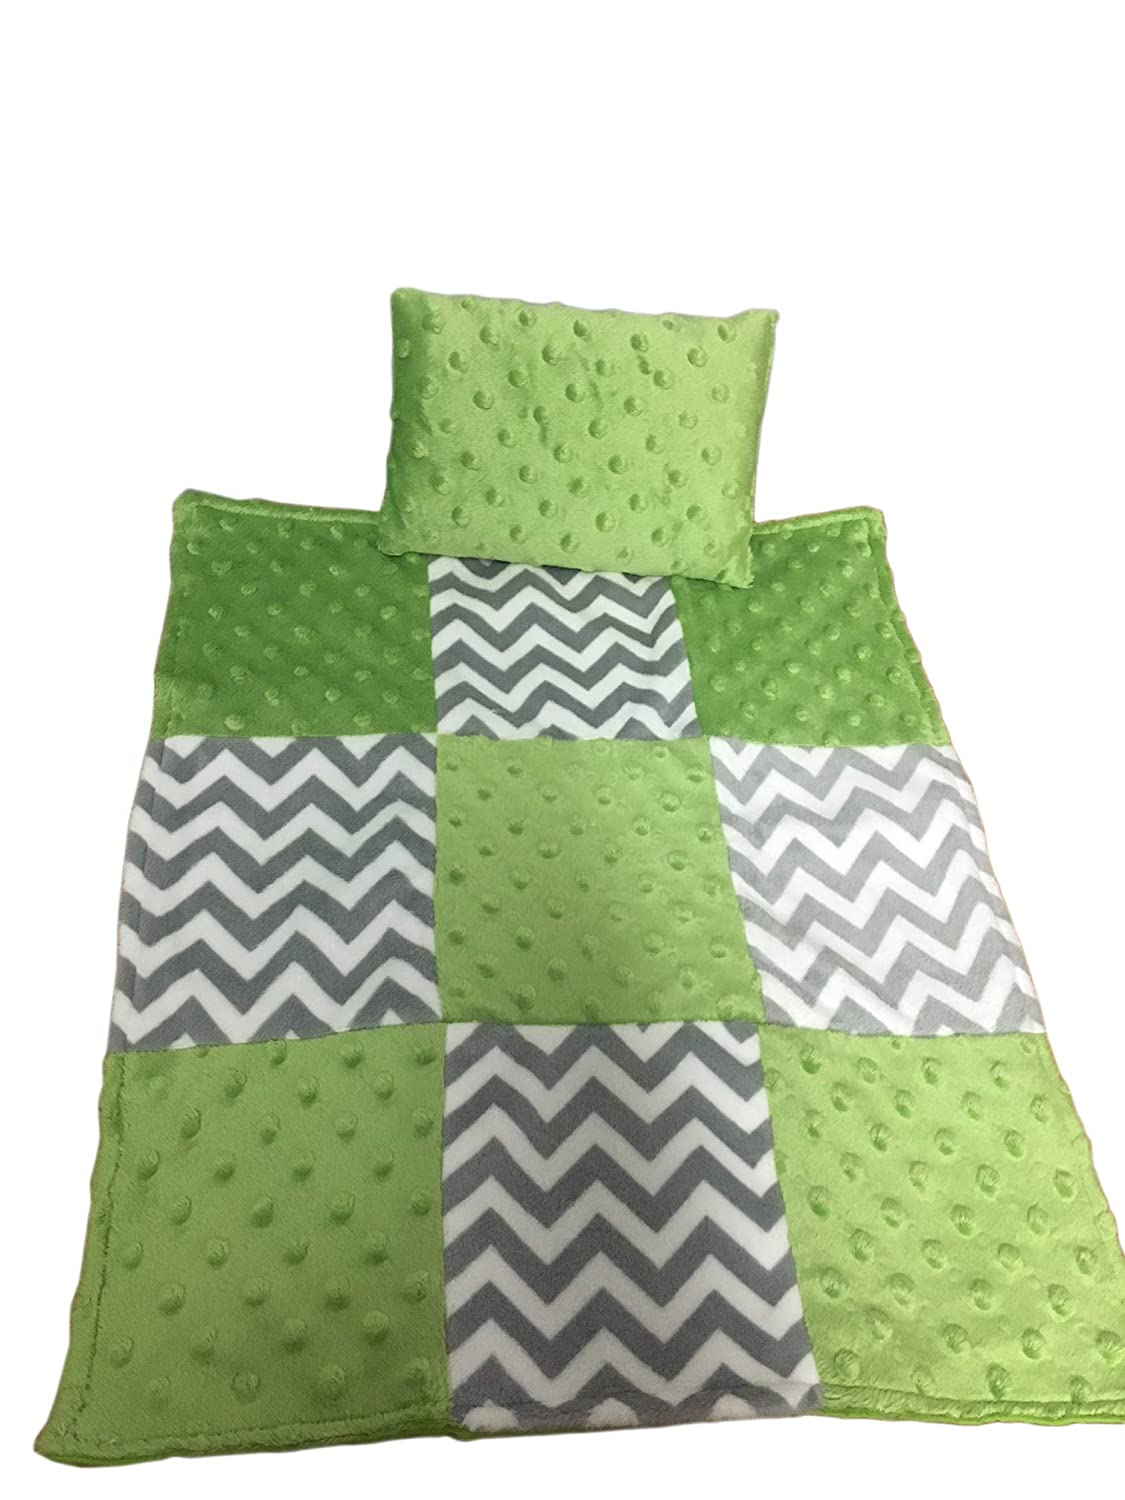 Baby Doll Cuddly Minky Chevron Patch Doll Blanket and Pillow Set, Green Apple